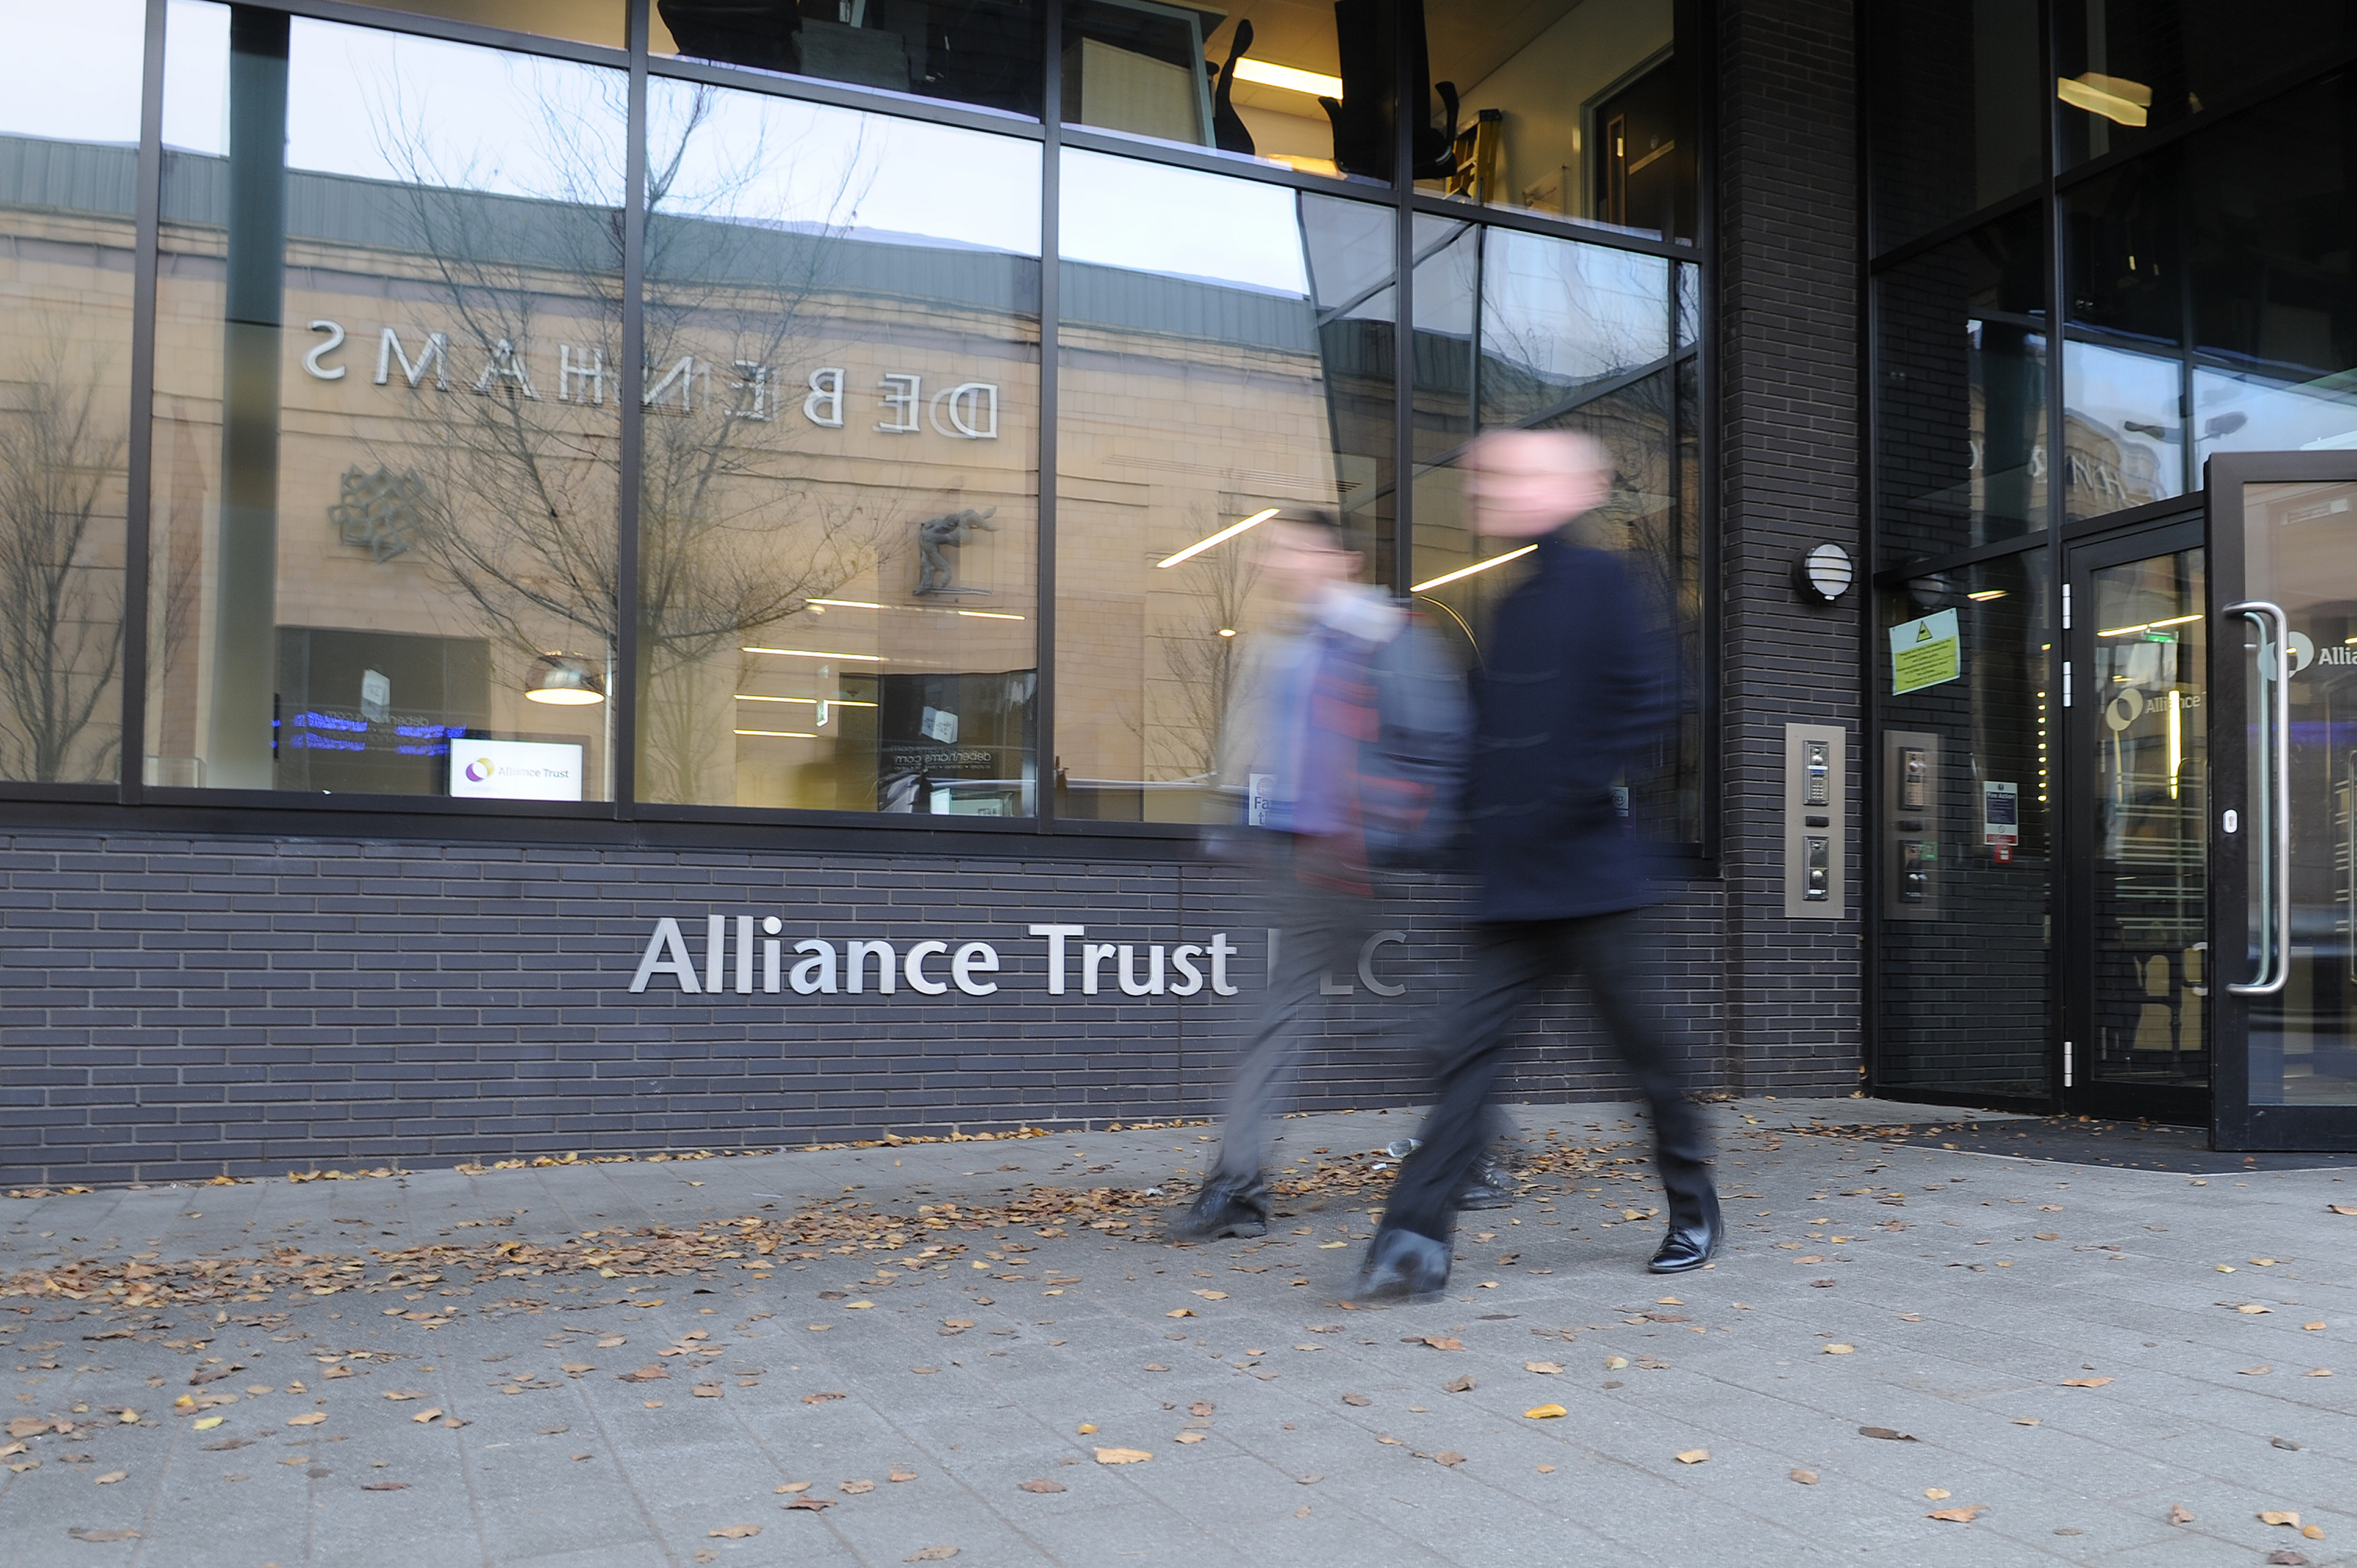 Alliance Trust's headquarters on West Marketgait. Dundee